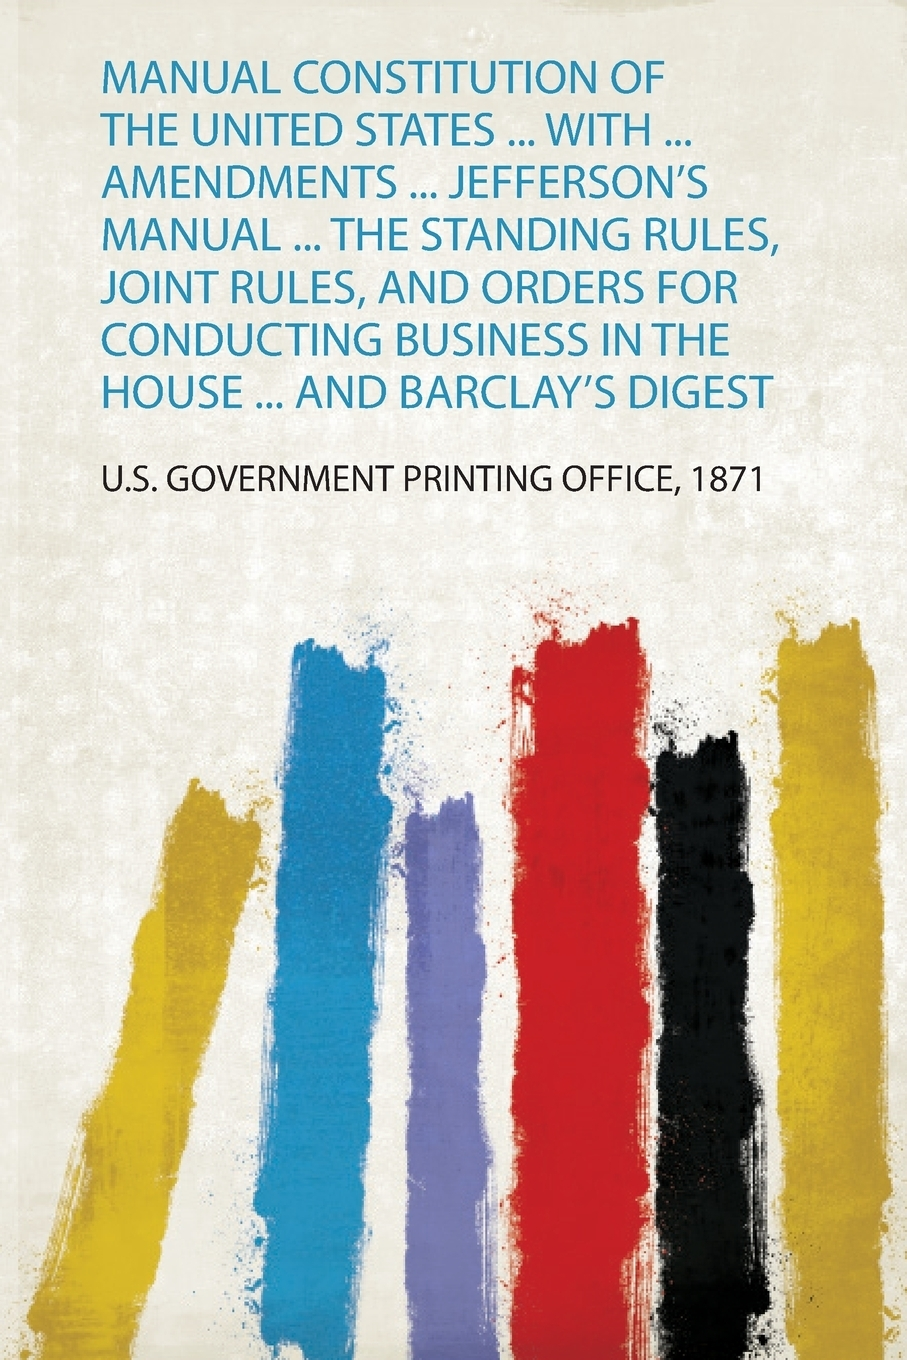 Manual Constitution of the United States ... With Amendments Jeffersons Standing Rules, Joint and Orders for Conducting Business in House Barclays Digest